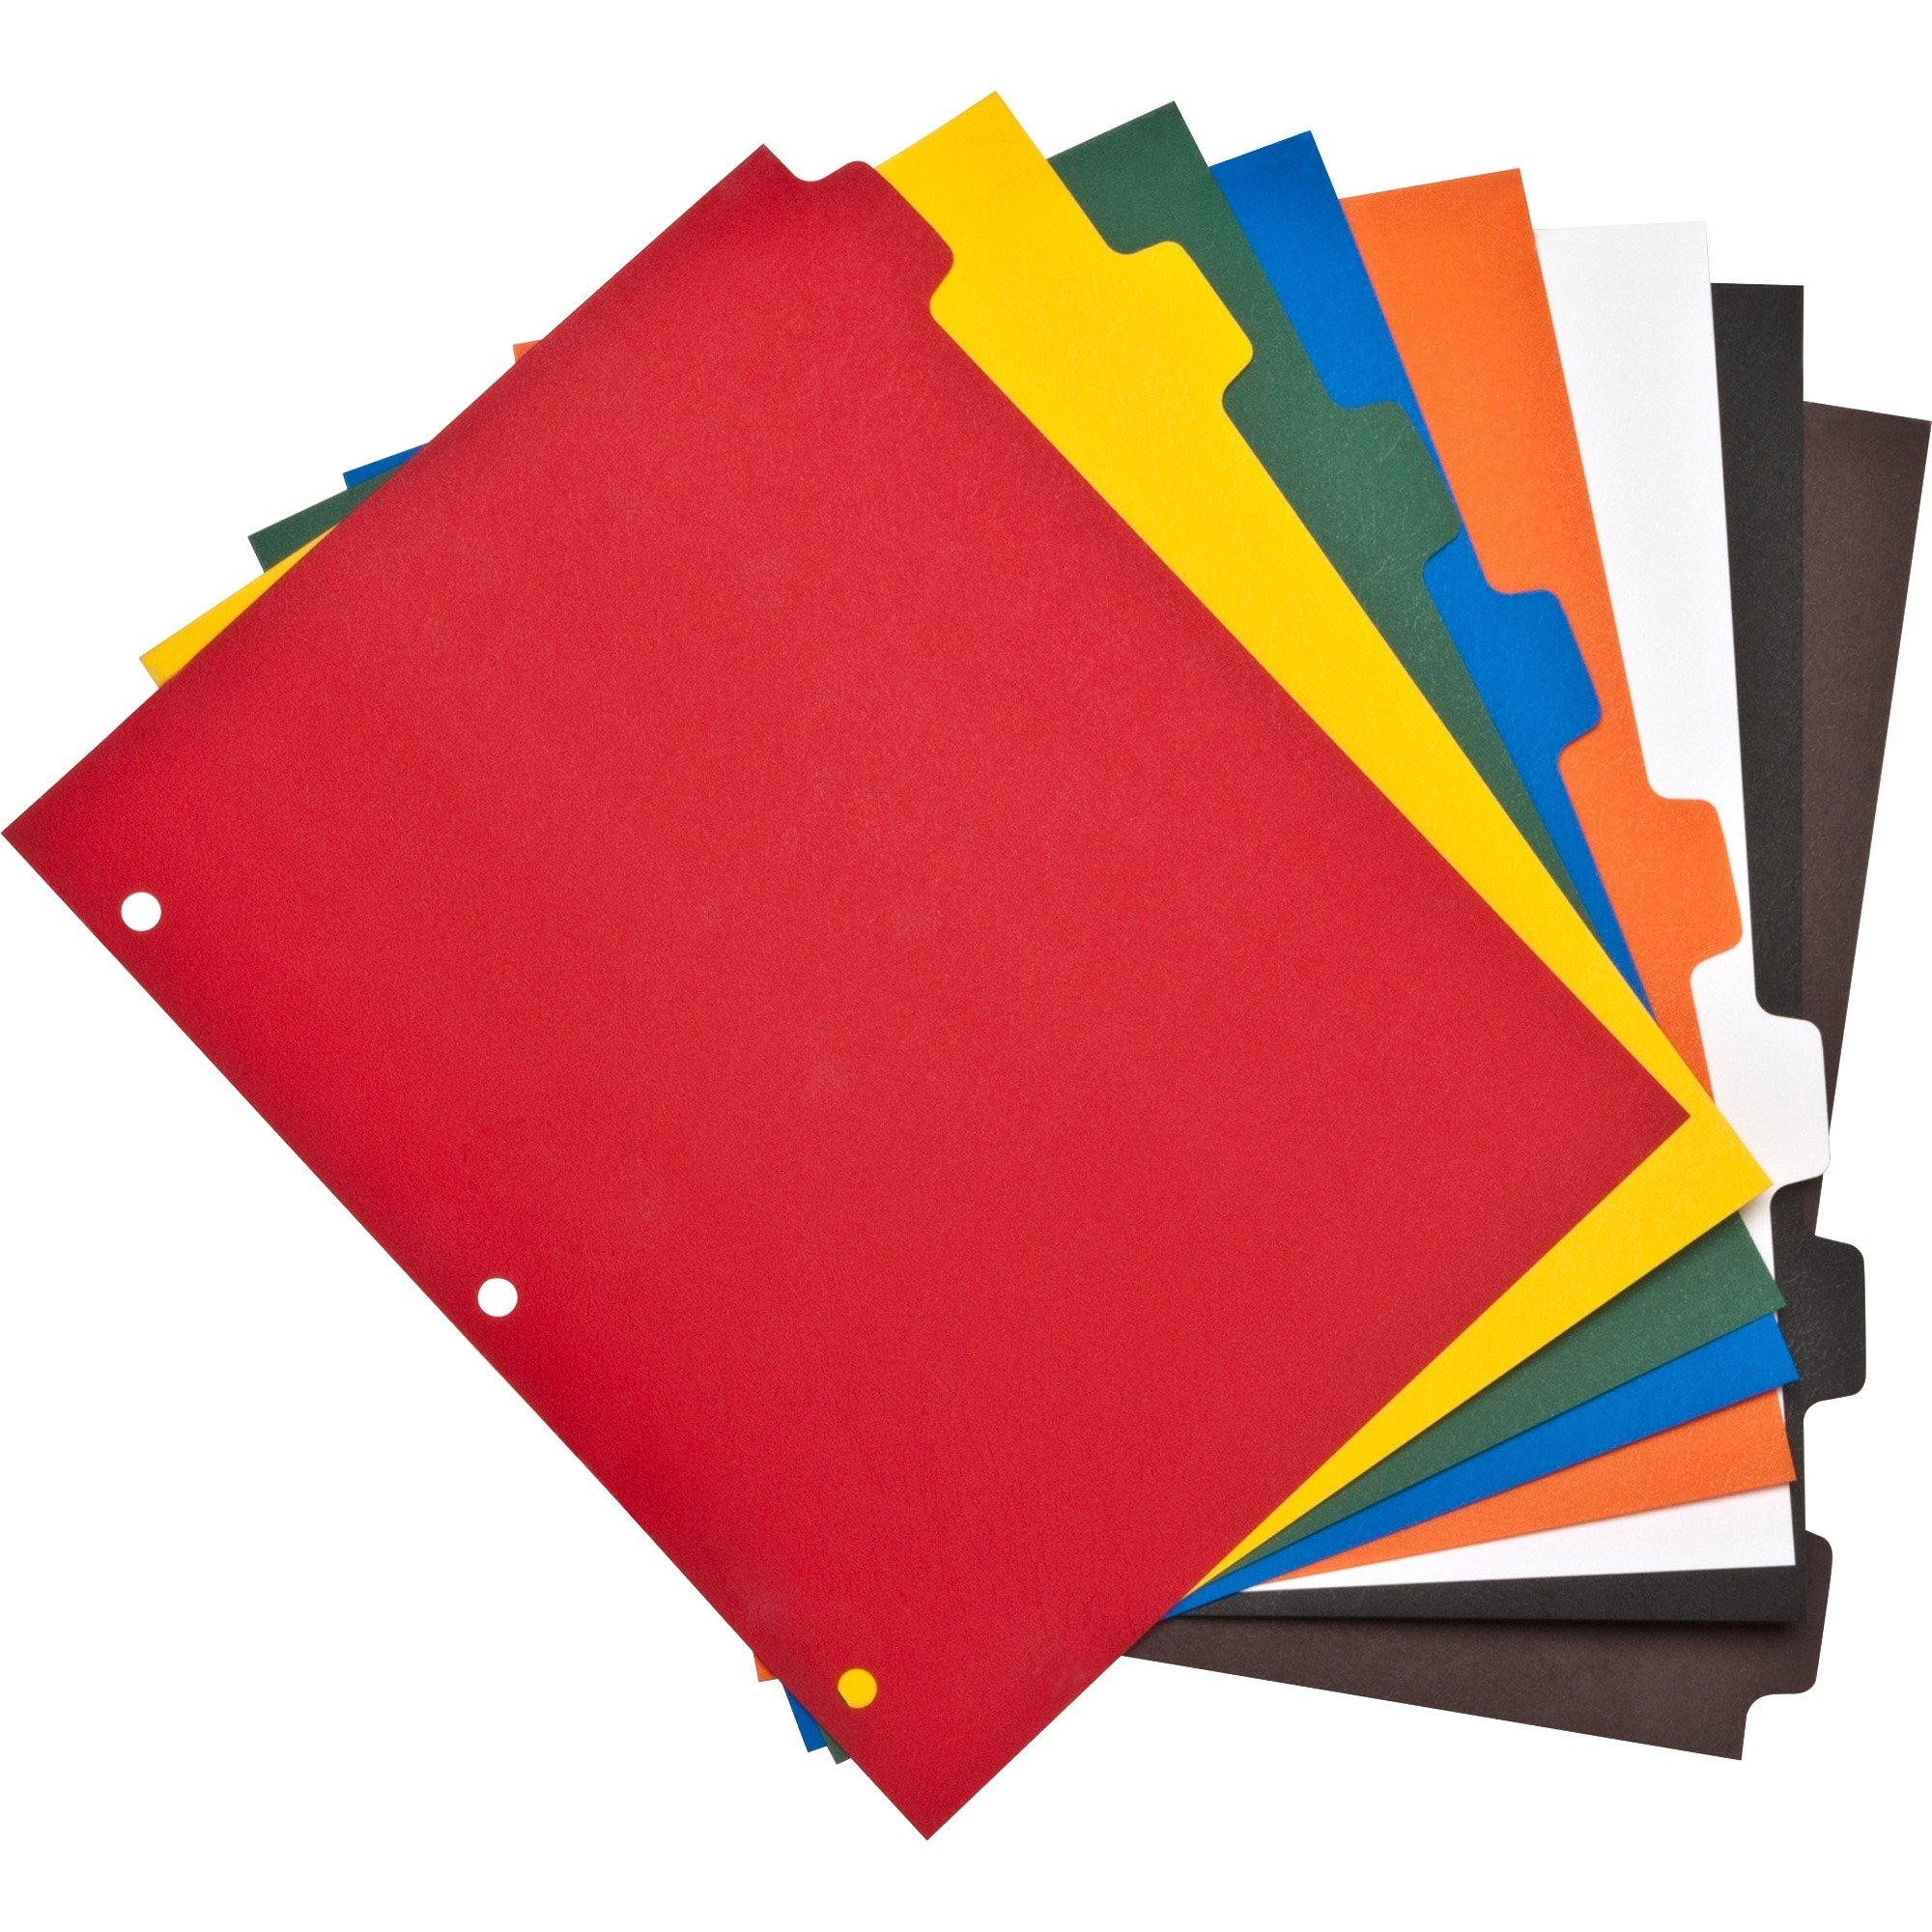 Advantage Plain Tab Color Polyethylene Index Dividers, 3 Hole Punched, 8-Tab Sets, 25 Total Sets in Red, Yellow, Green, Blue, Orange, White, Black, Brown